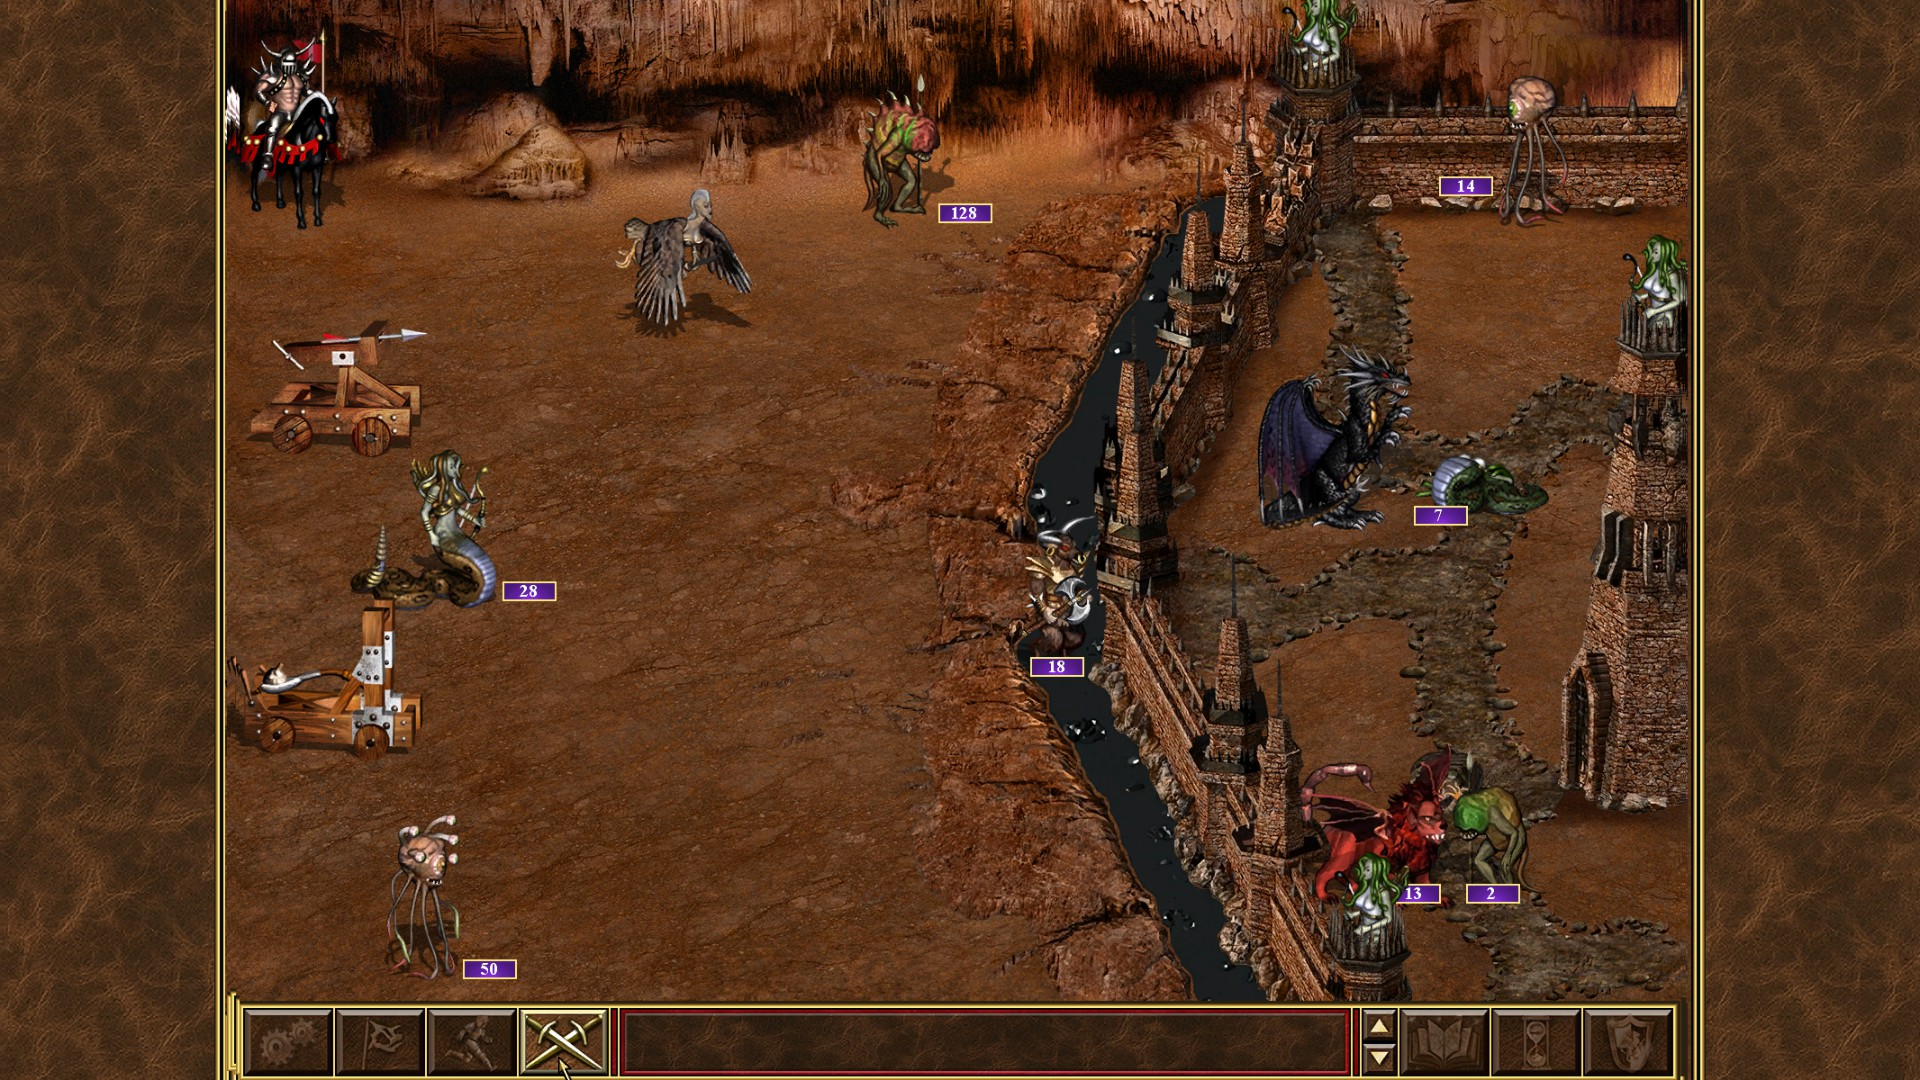 heroes of might and magic 3 hd mac os x